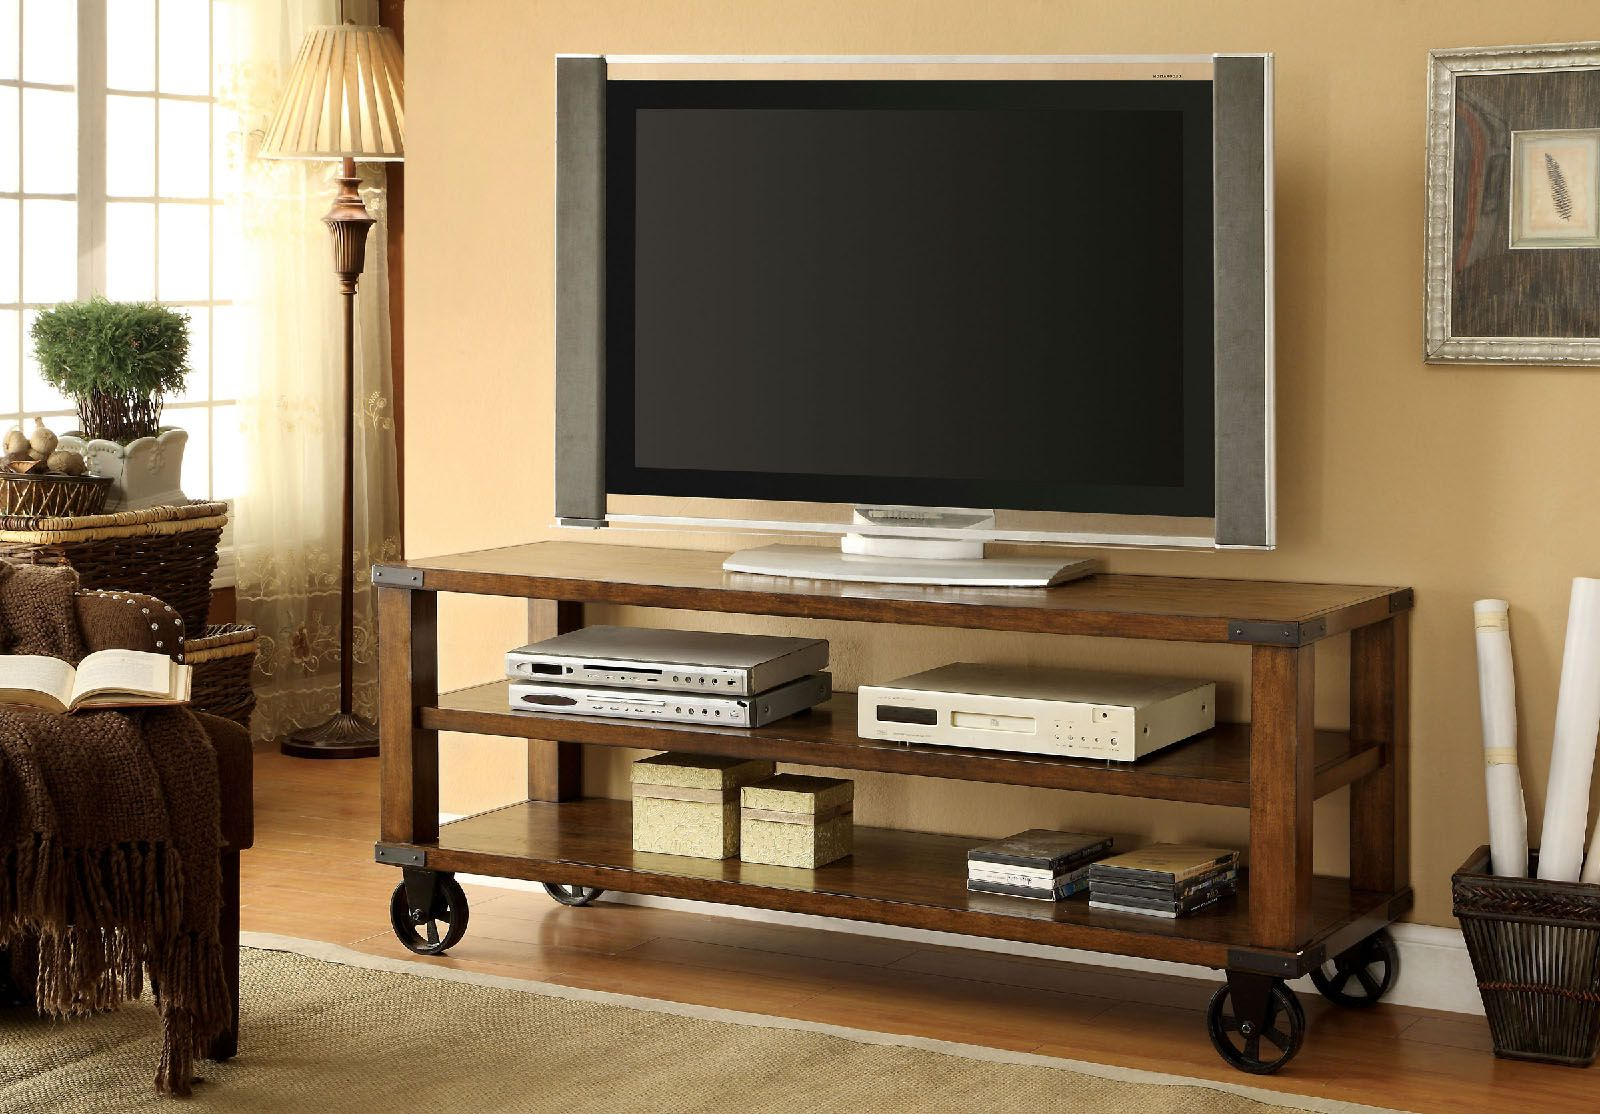 Furniture Of America Cm5227 Caster Wheels Dark Oak Finish With Regard To Mobile Tv Stands With Lockable Wheels For Corner (View 15 of 20)